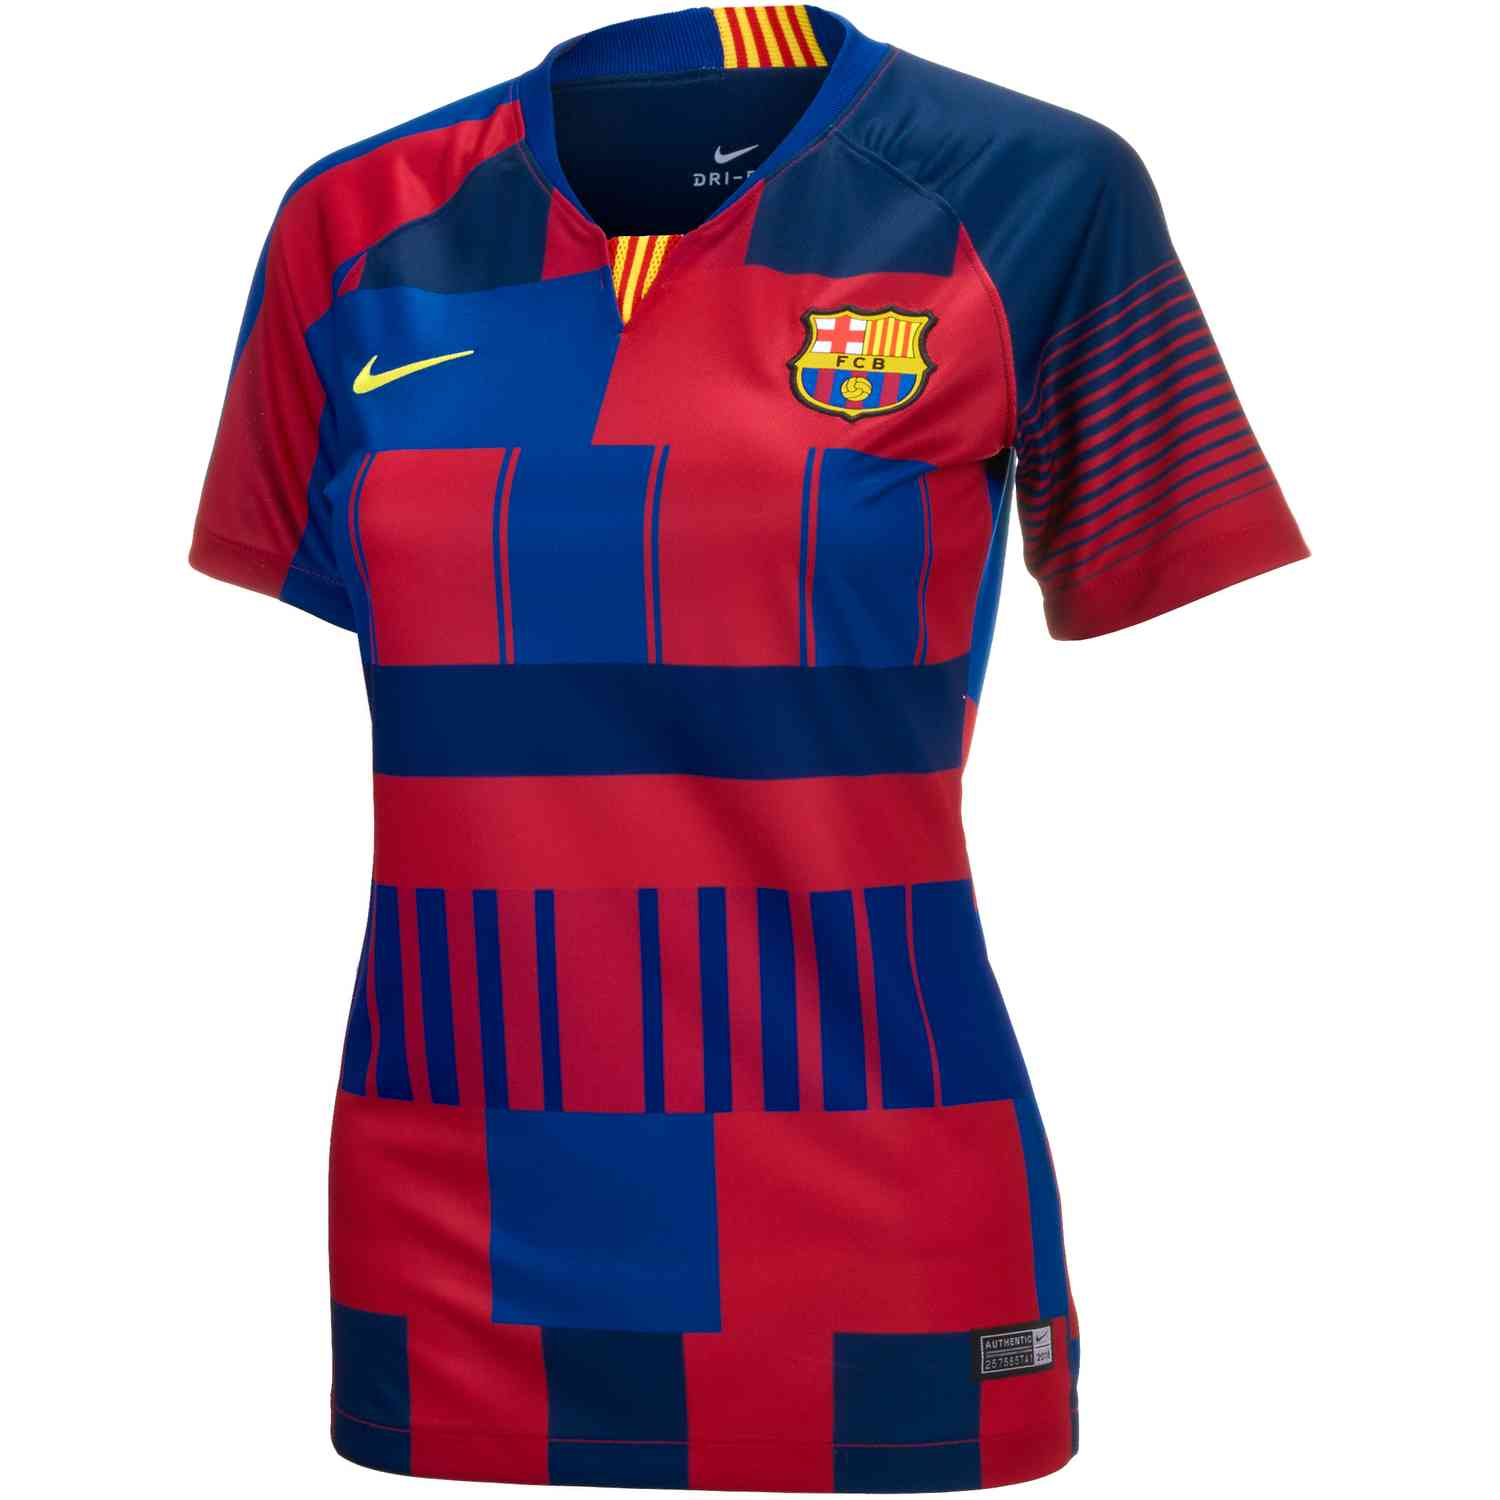 44f00c6dd Nike and Barcelona 20th Anniversary Home Jersey - Womens - SoccerPro